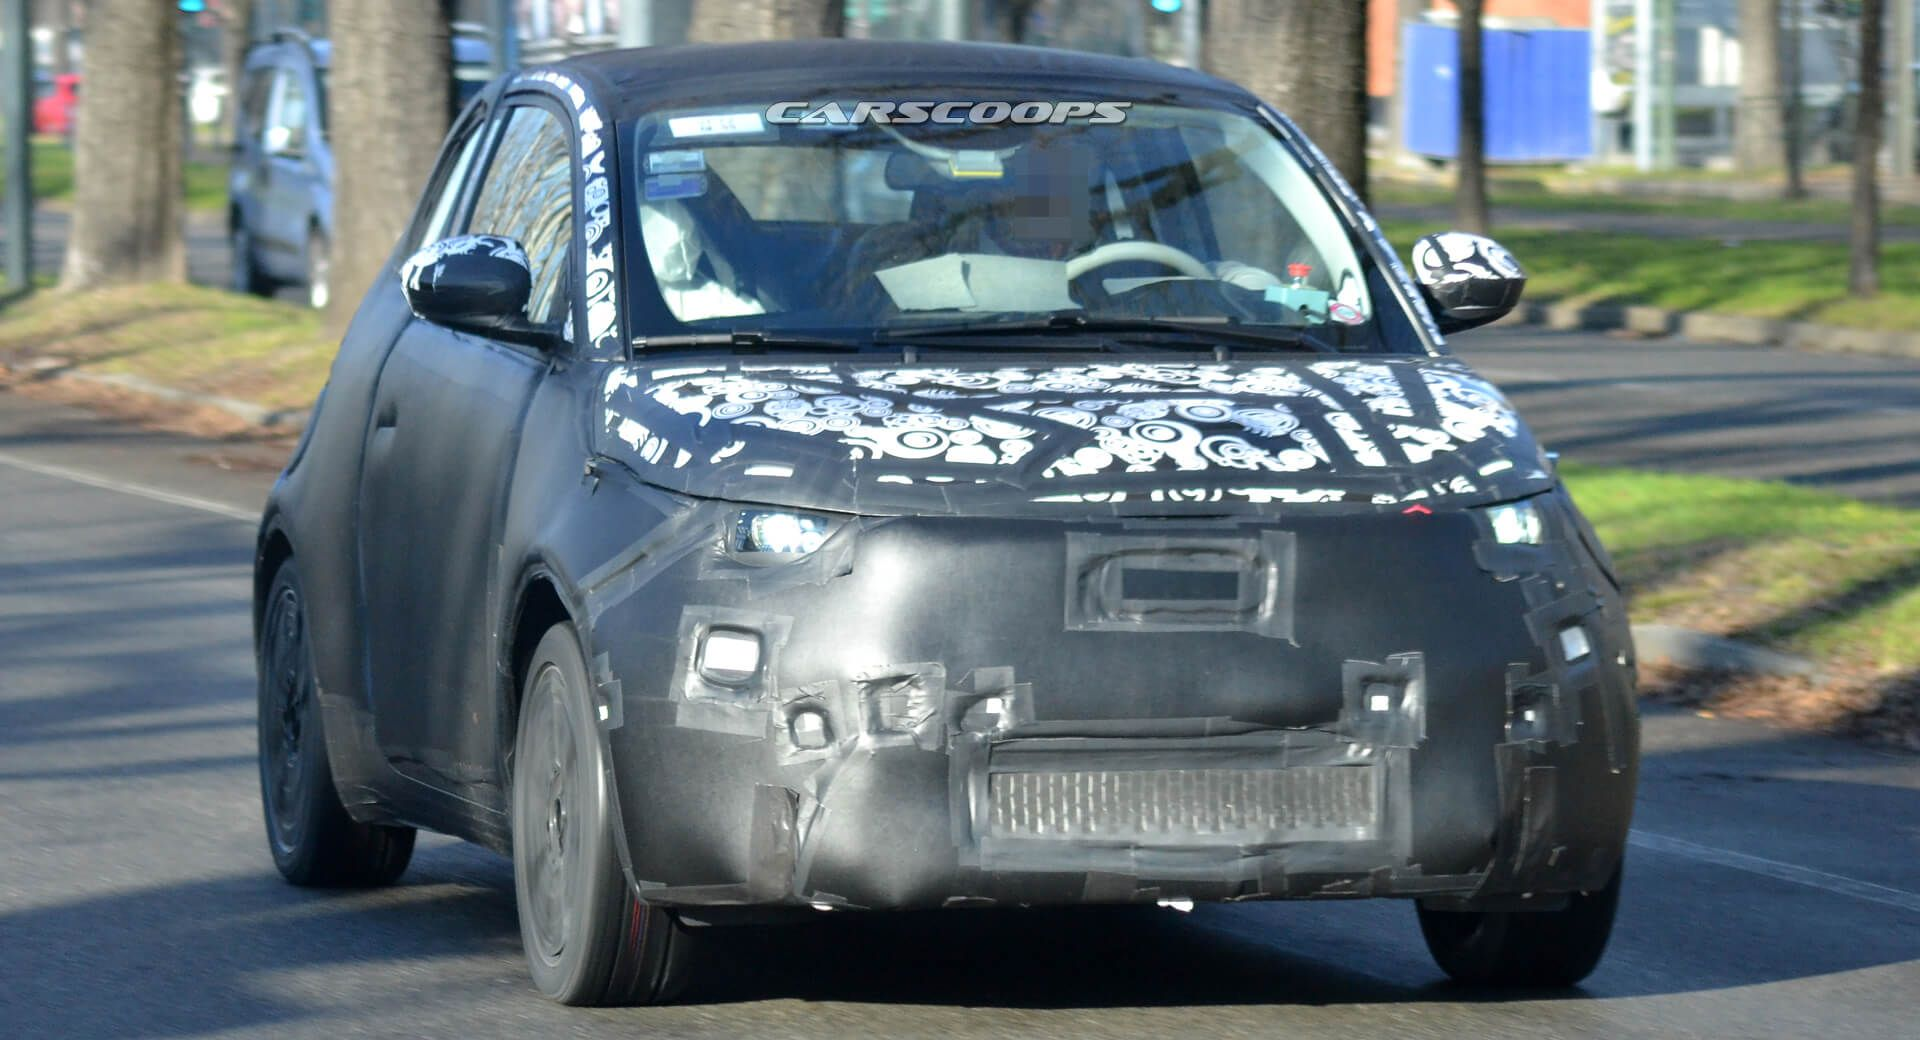 New 2021 Fiat 500e Electric City Car Spied Wearing Production Body